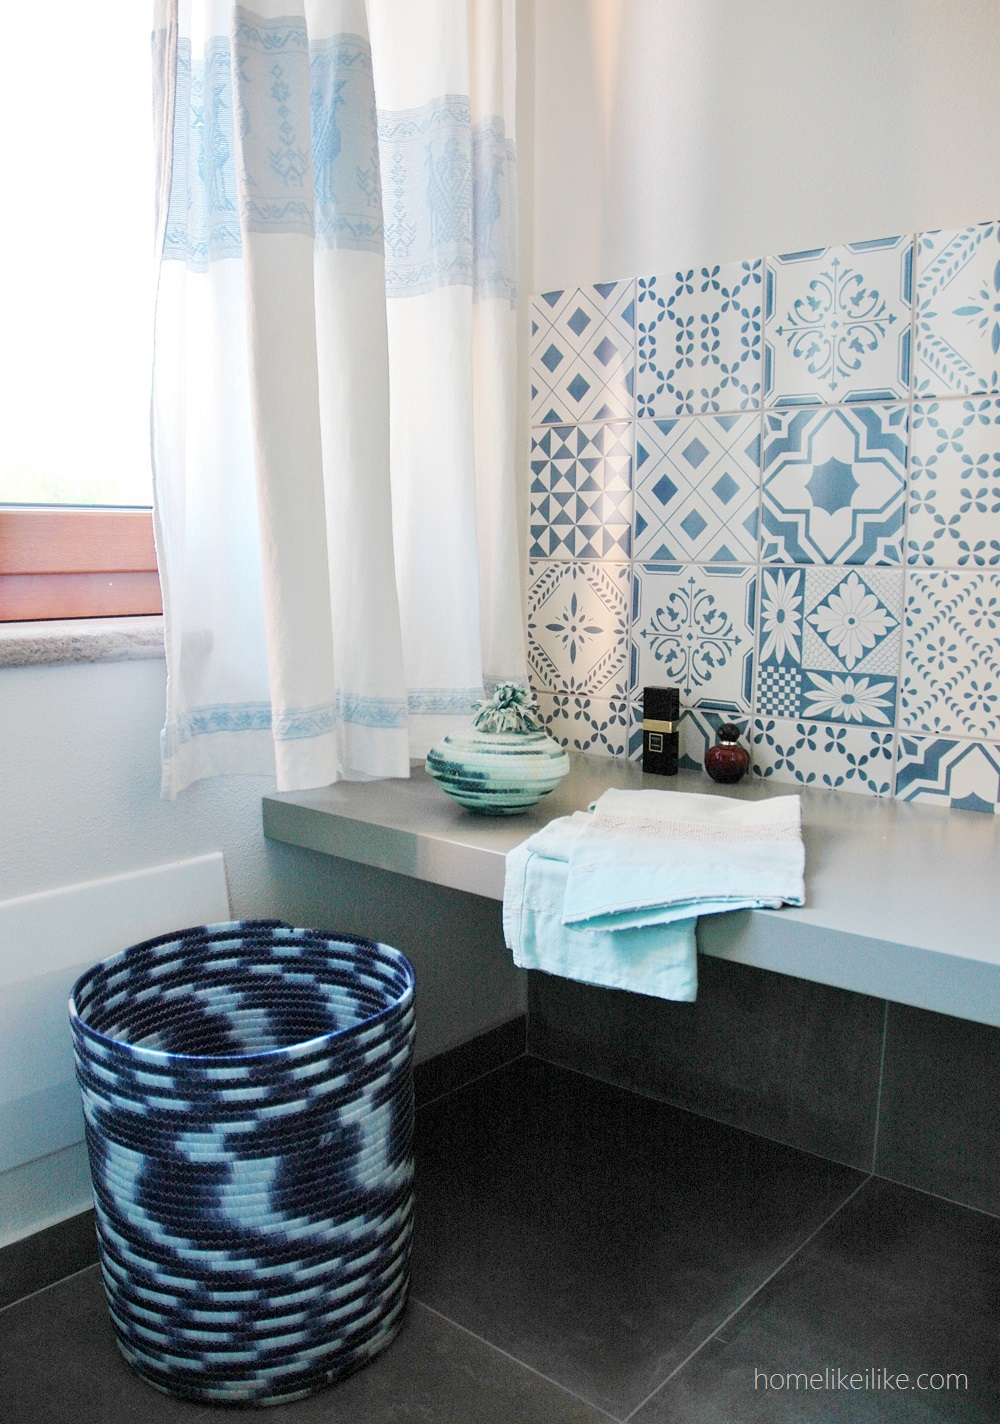 sardinian bathroom - homelikeilike.com